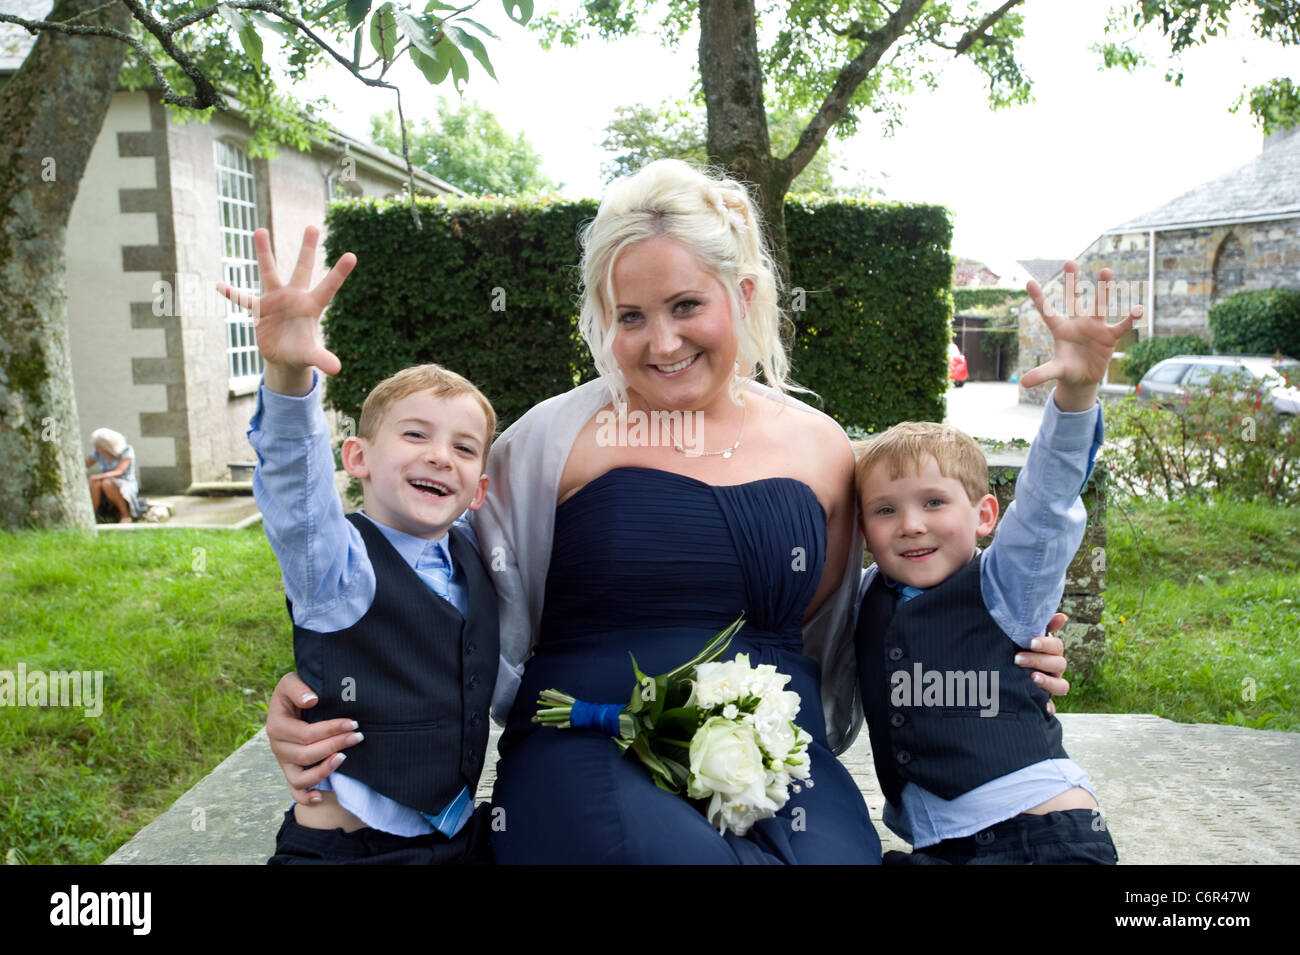 Matron of honour. A young mother with her 6 year old twins at a family wedding. - Stock Image